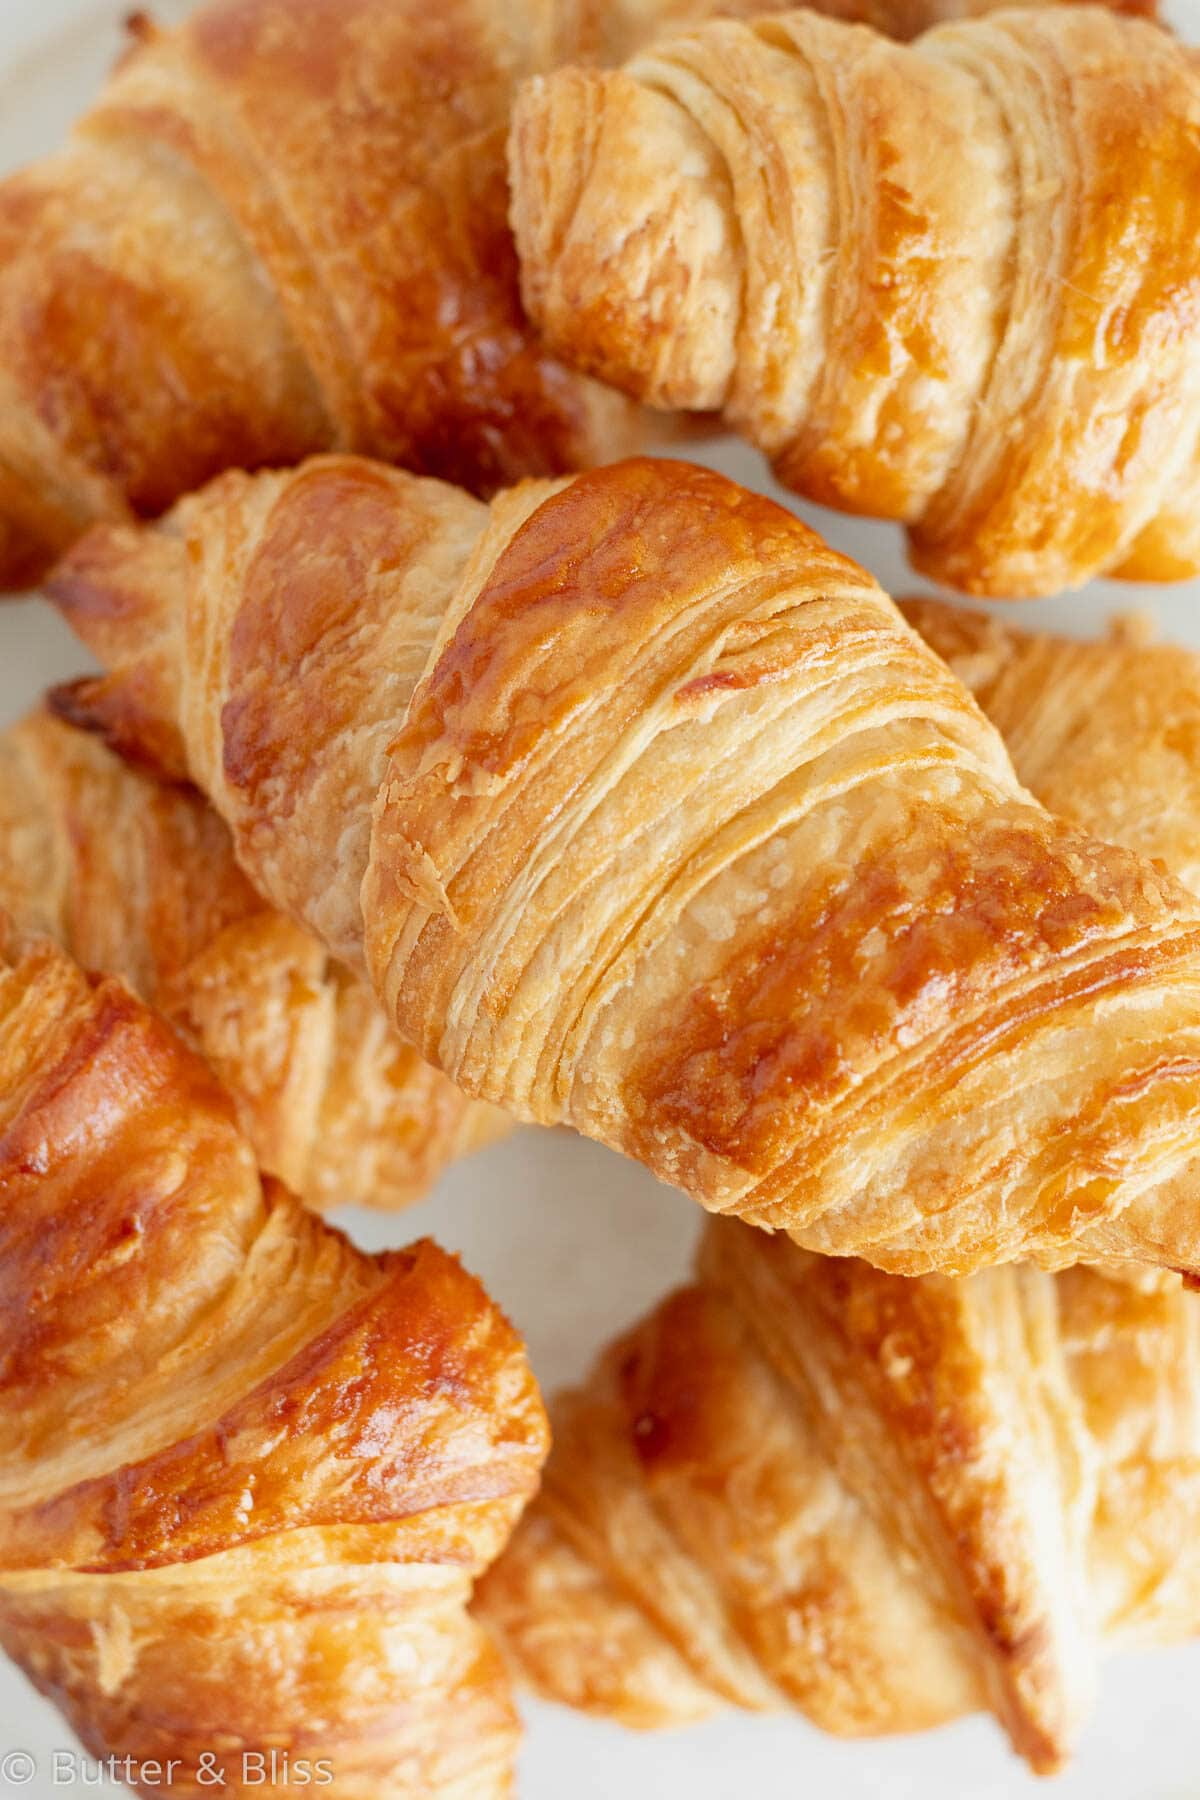 Close up of flaky layers of a homemade croissant